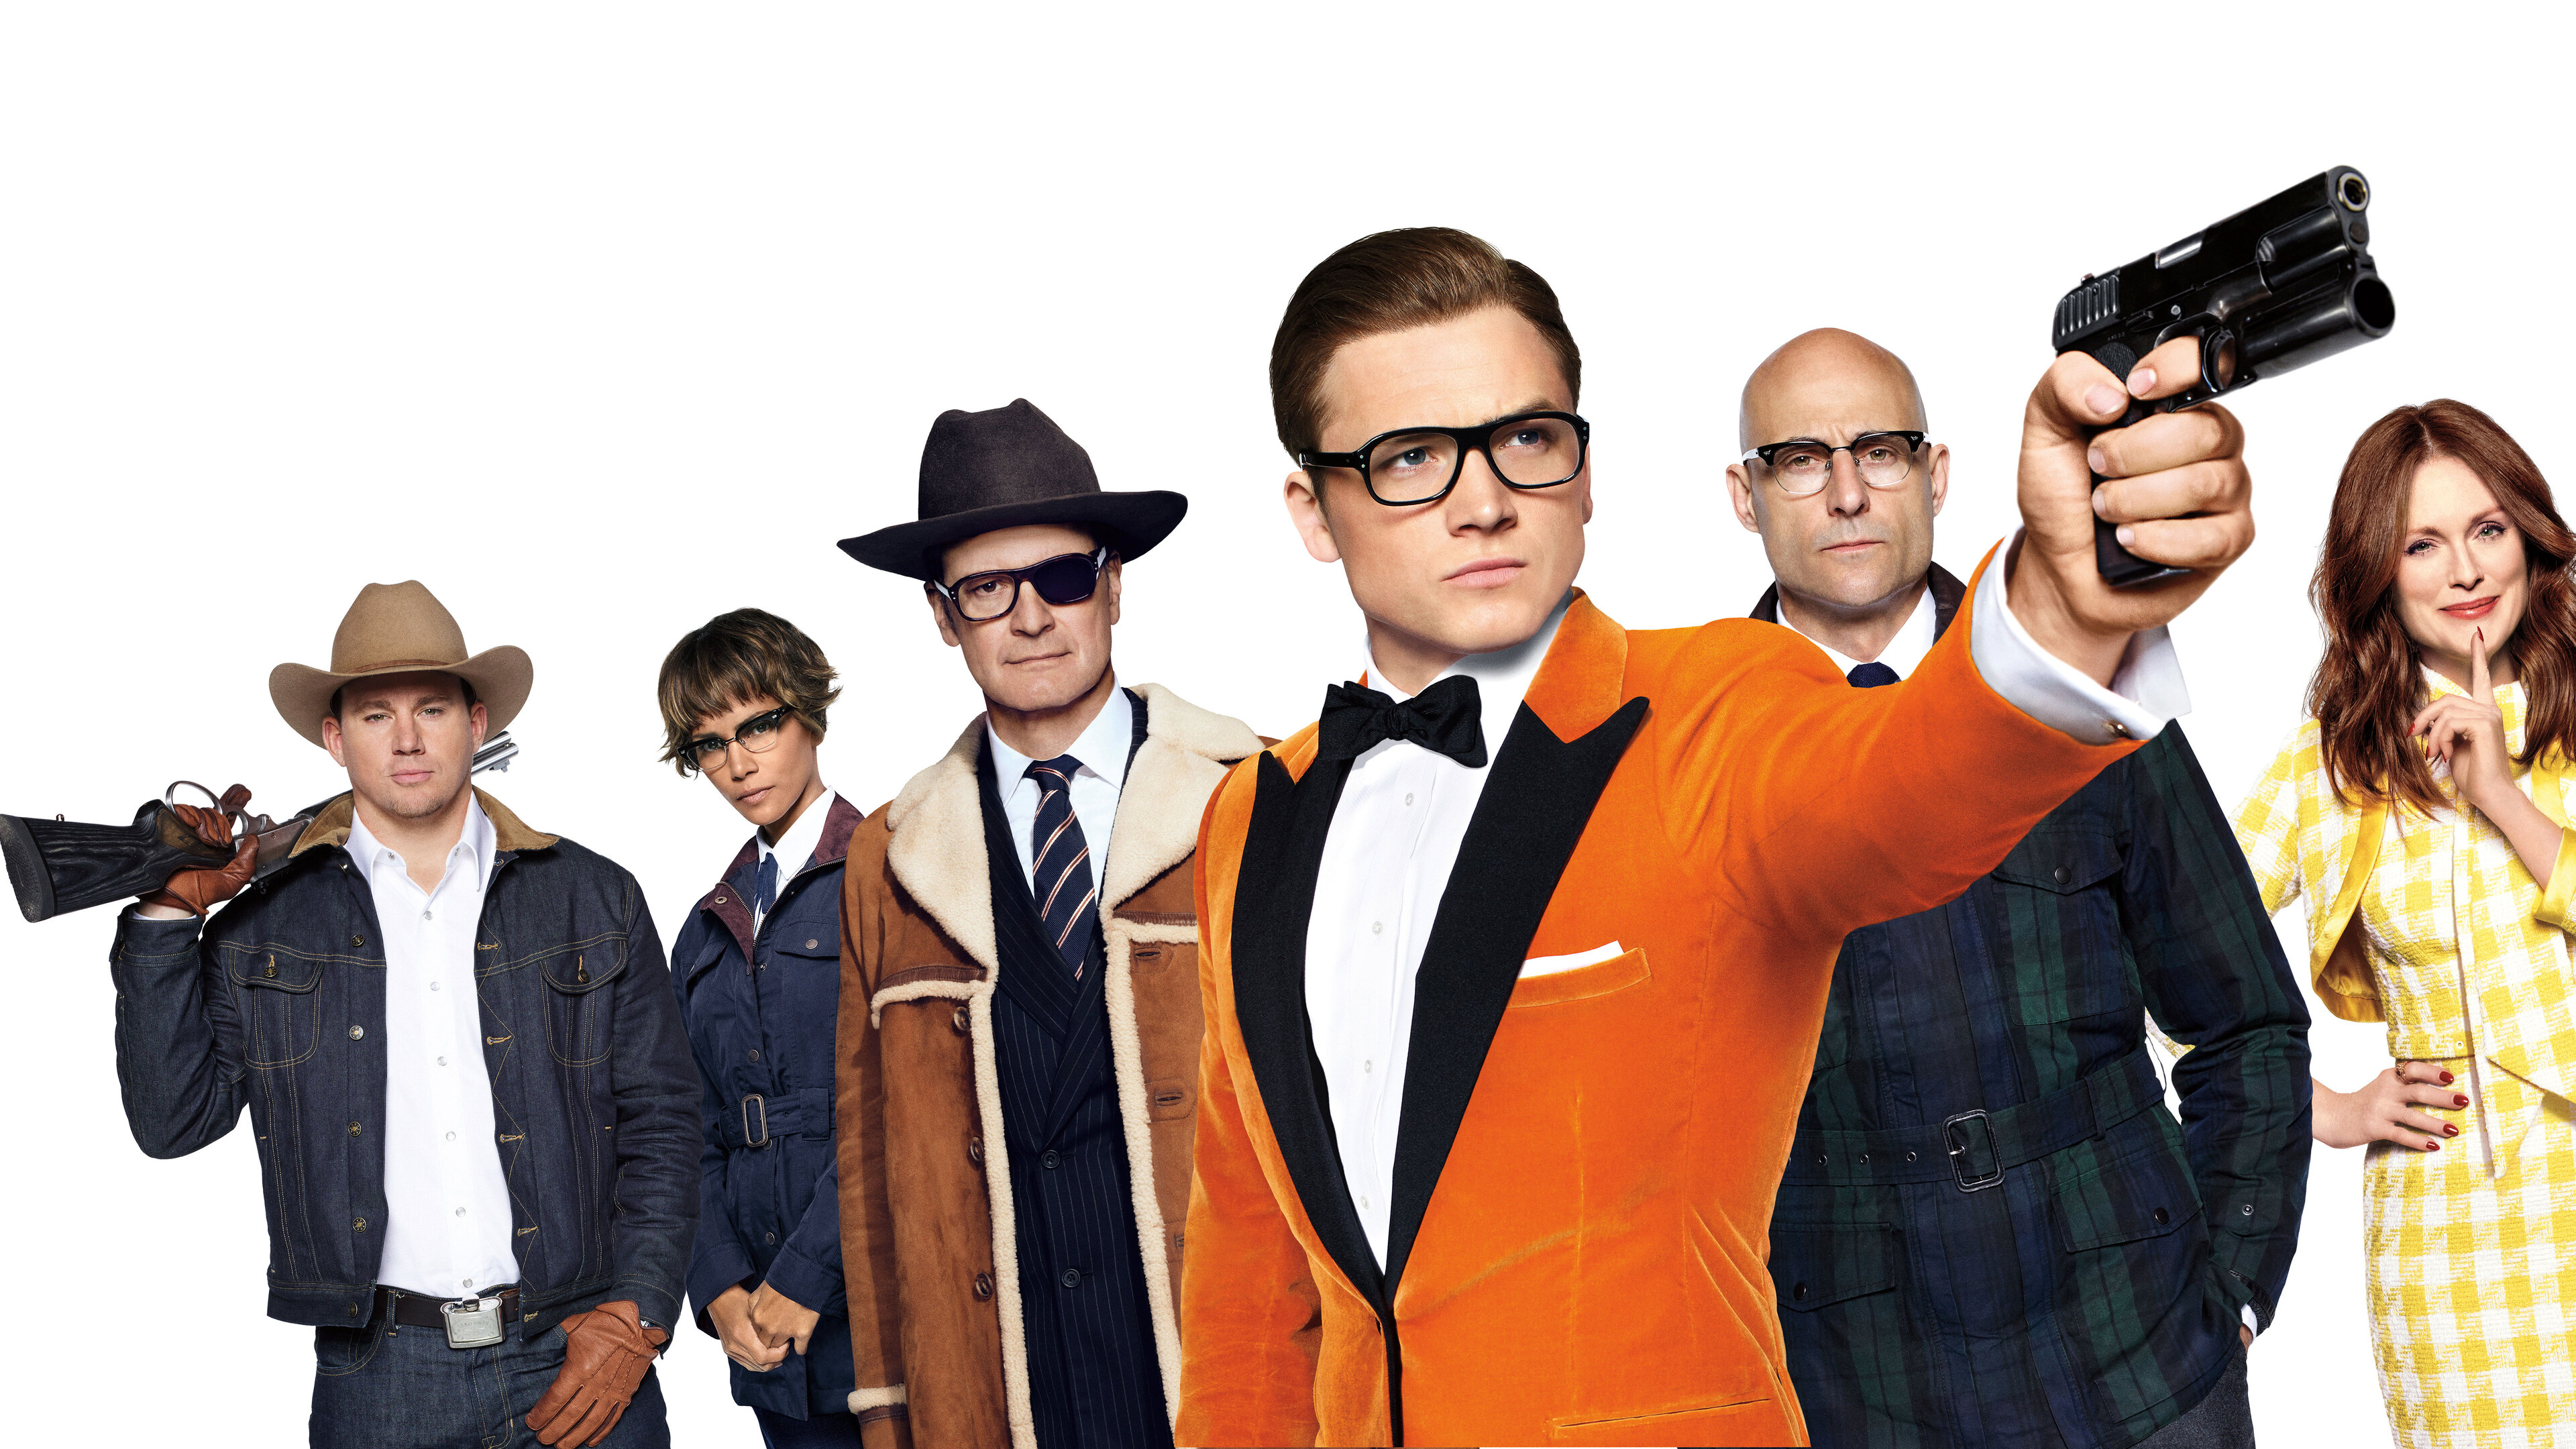 Kingsman The Golden Circle Wallpaper: 3840x2160 Kingsman The Golden Circle 8k 4k HD 4k